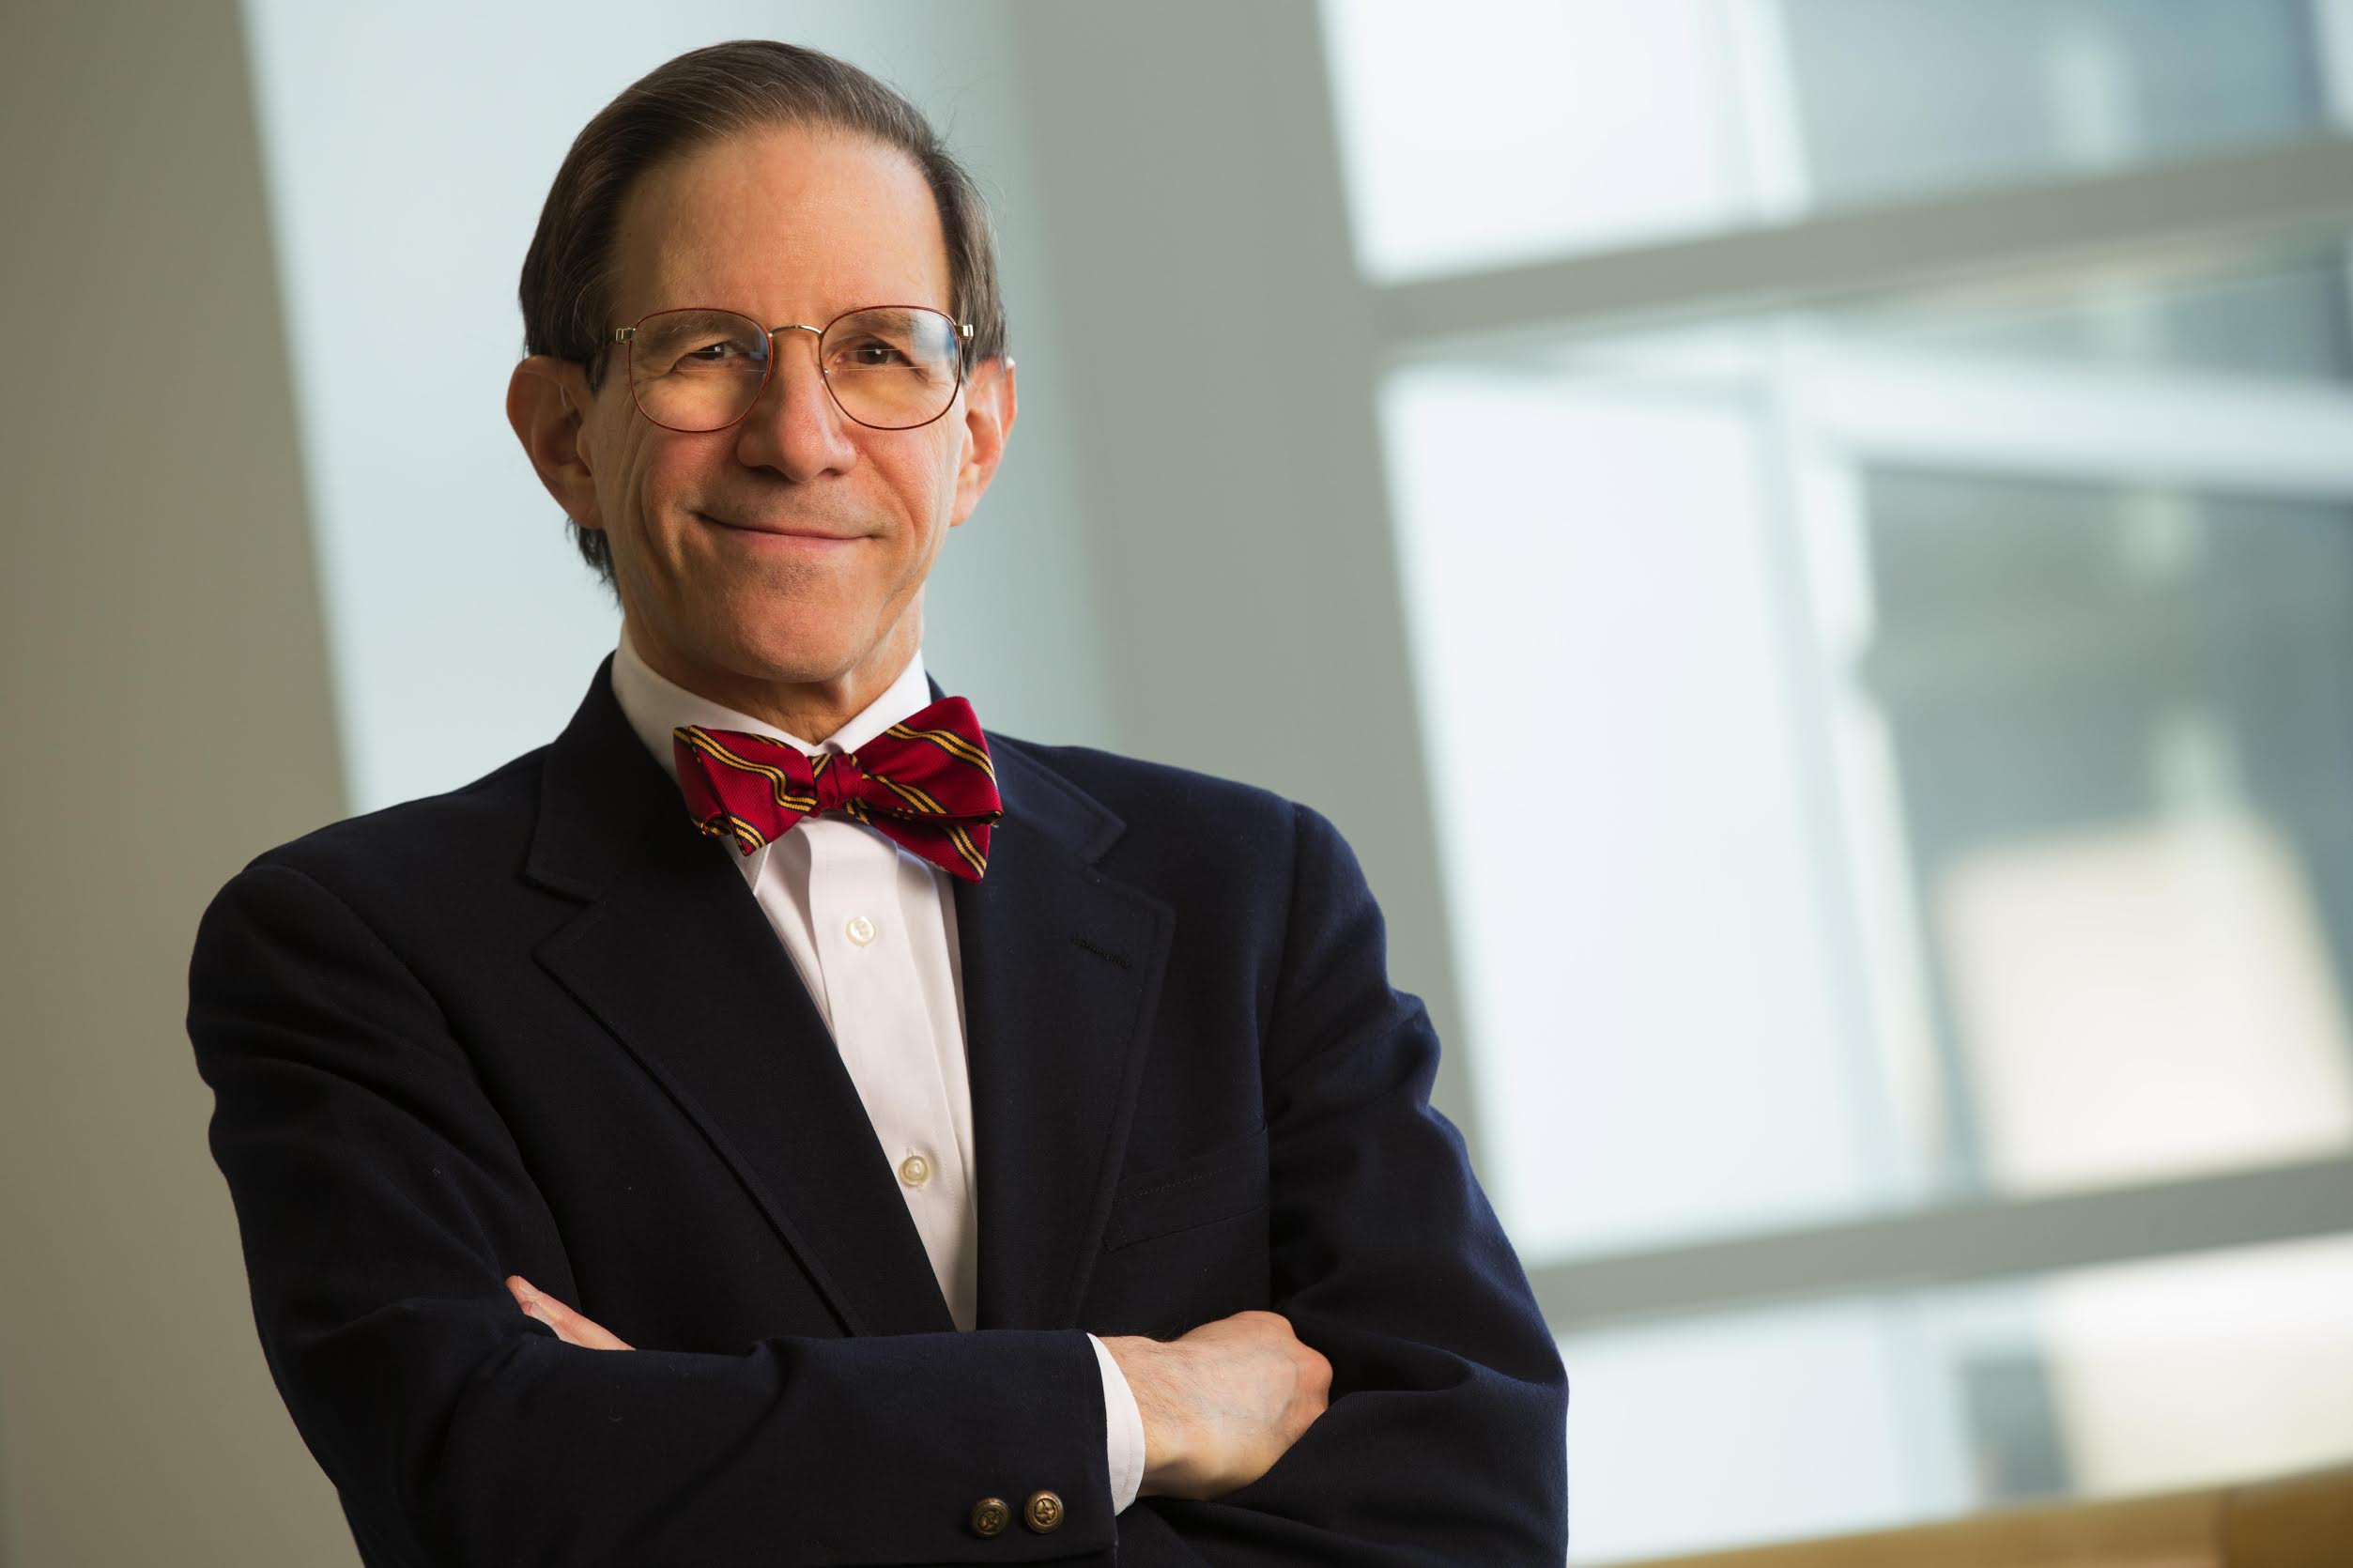 Dr. Sanford Markowitz found 20 genetic mutations that hint at the cause of colon cancer in African Americans.